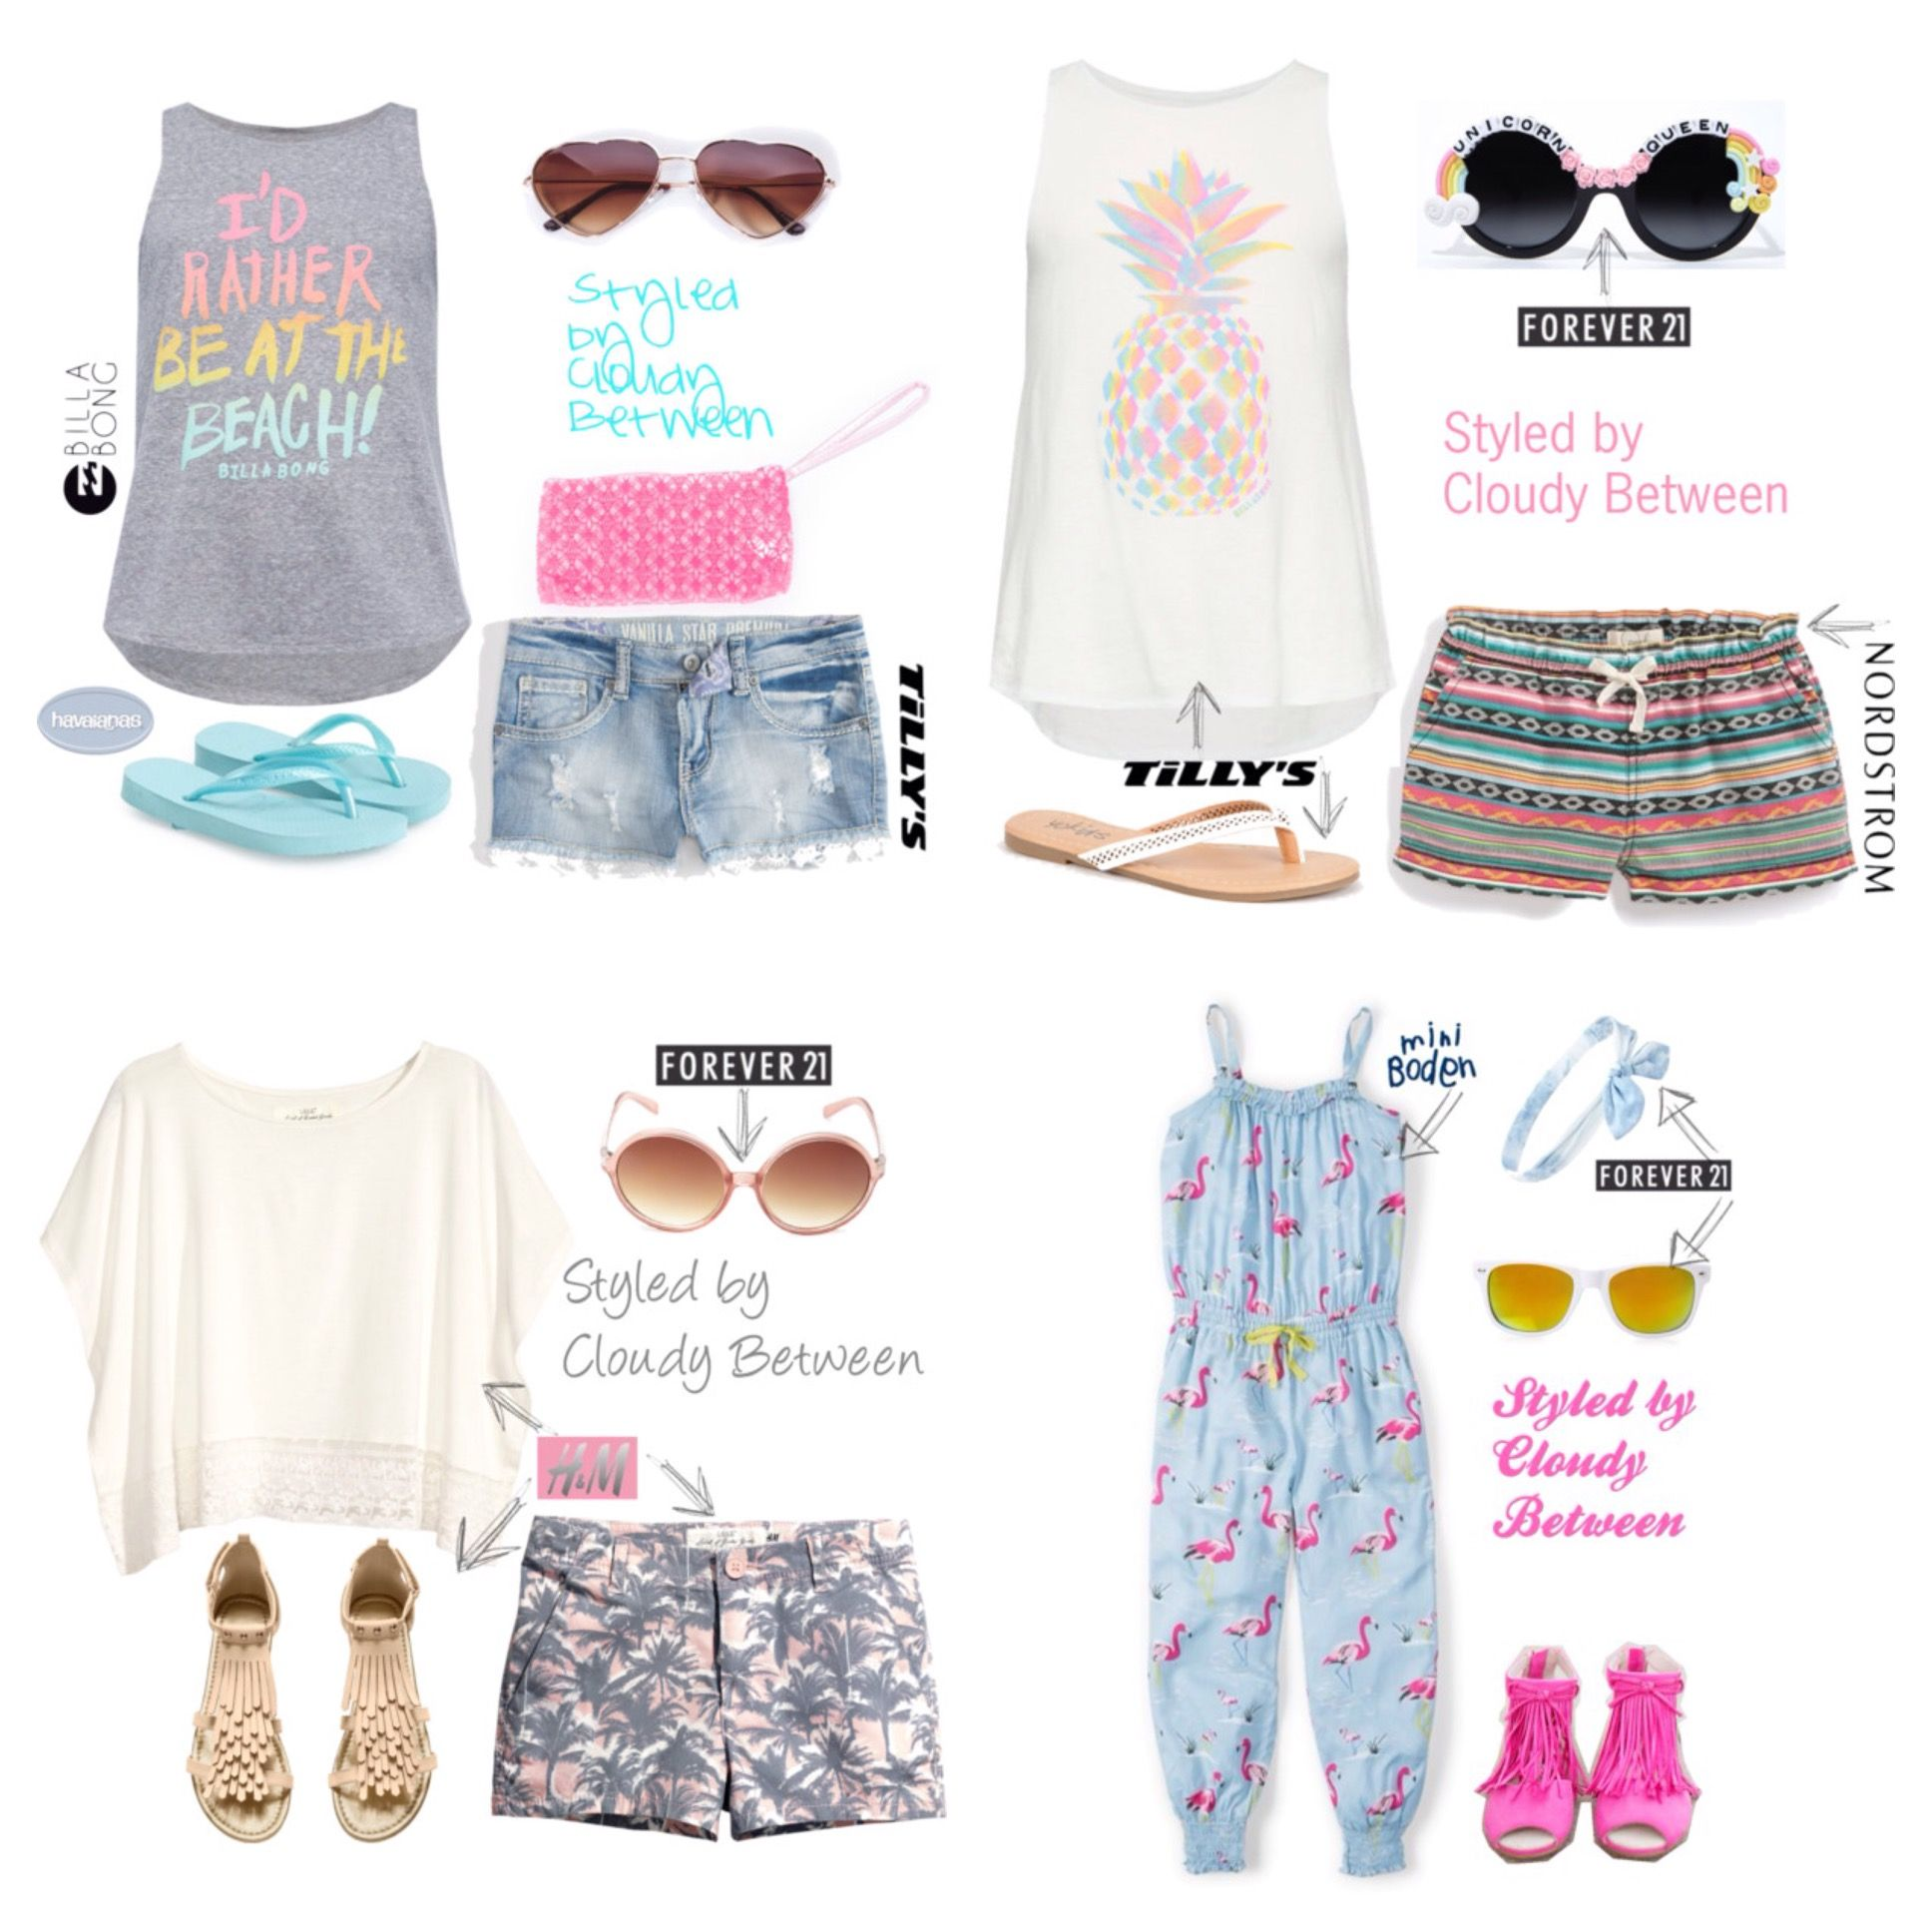 cloudy between | Clothing styled for tweens | Cute Outfits ...